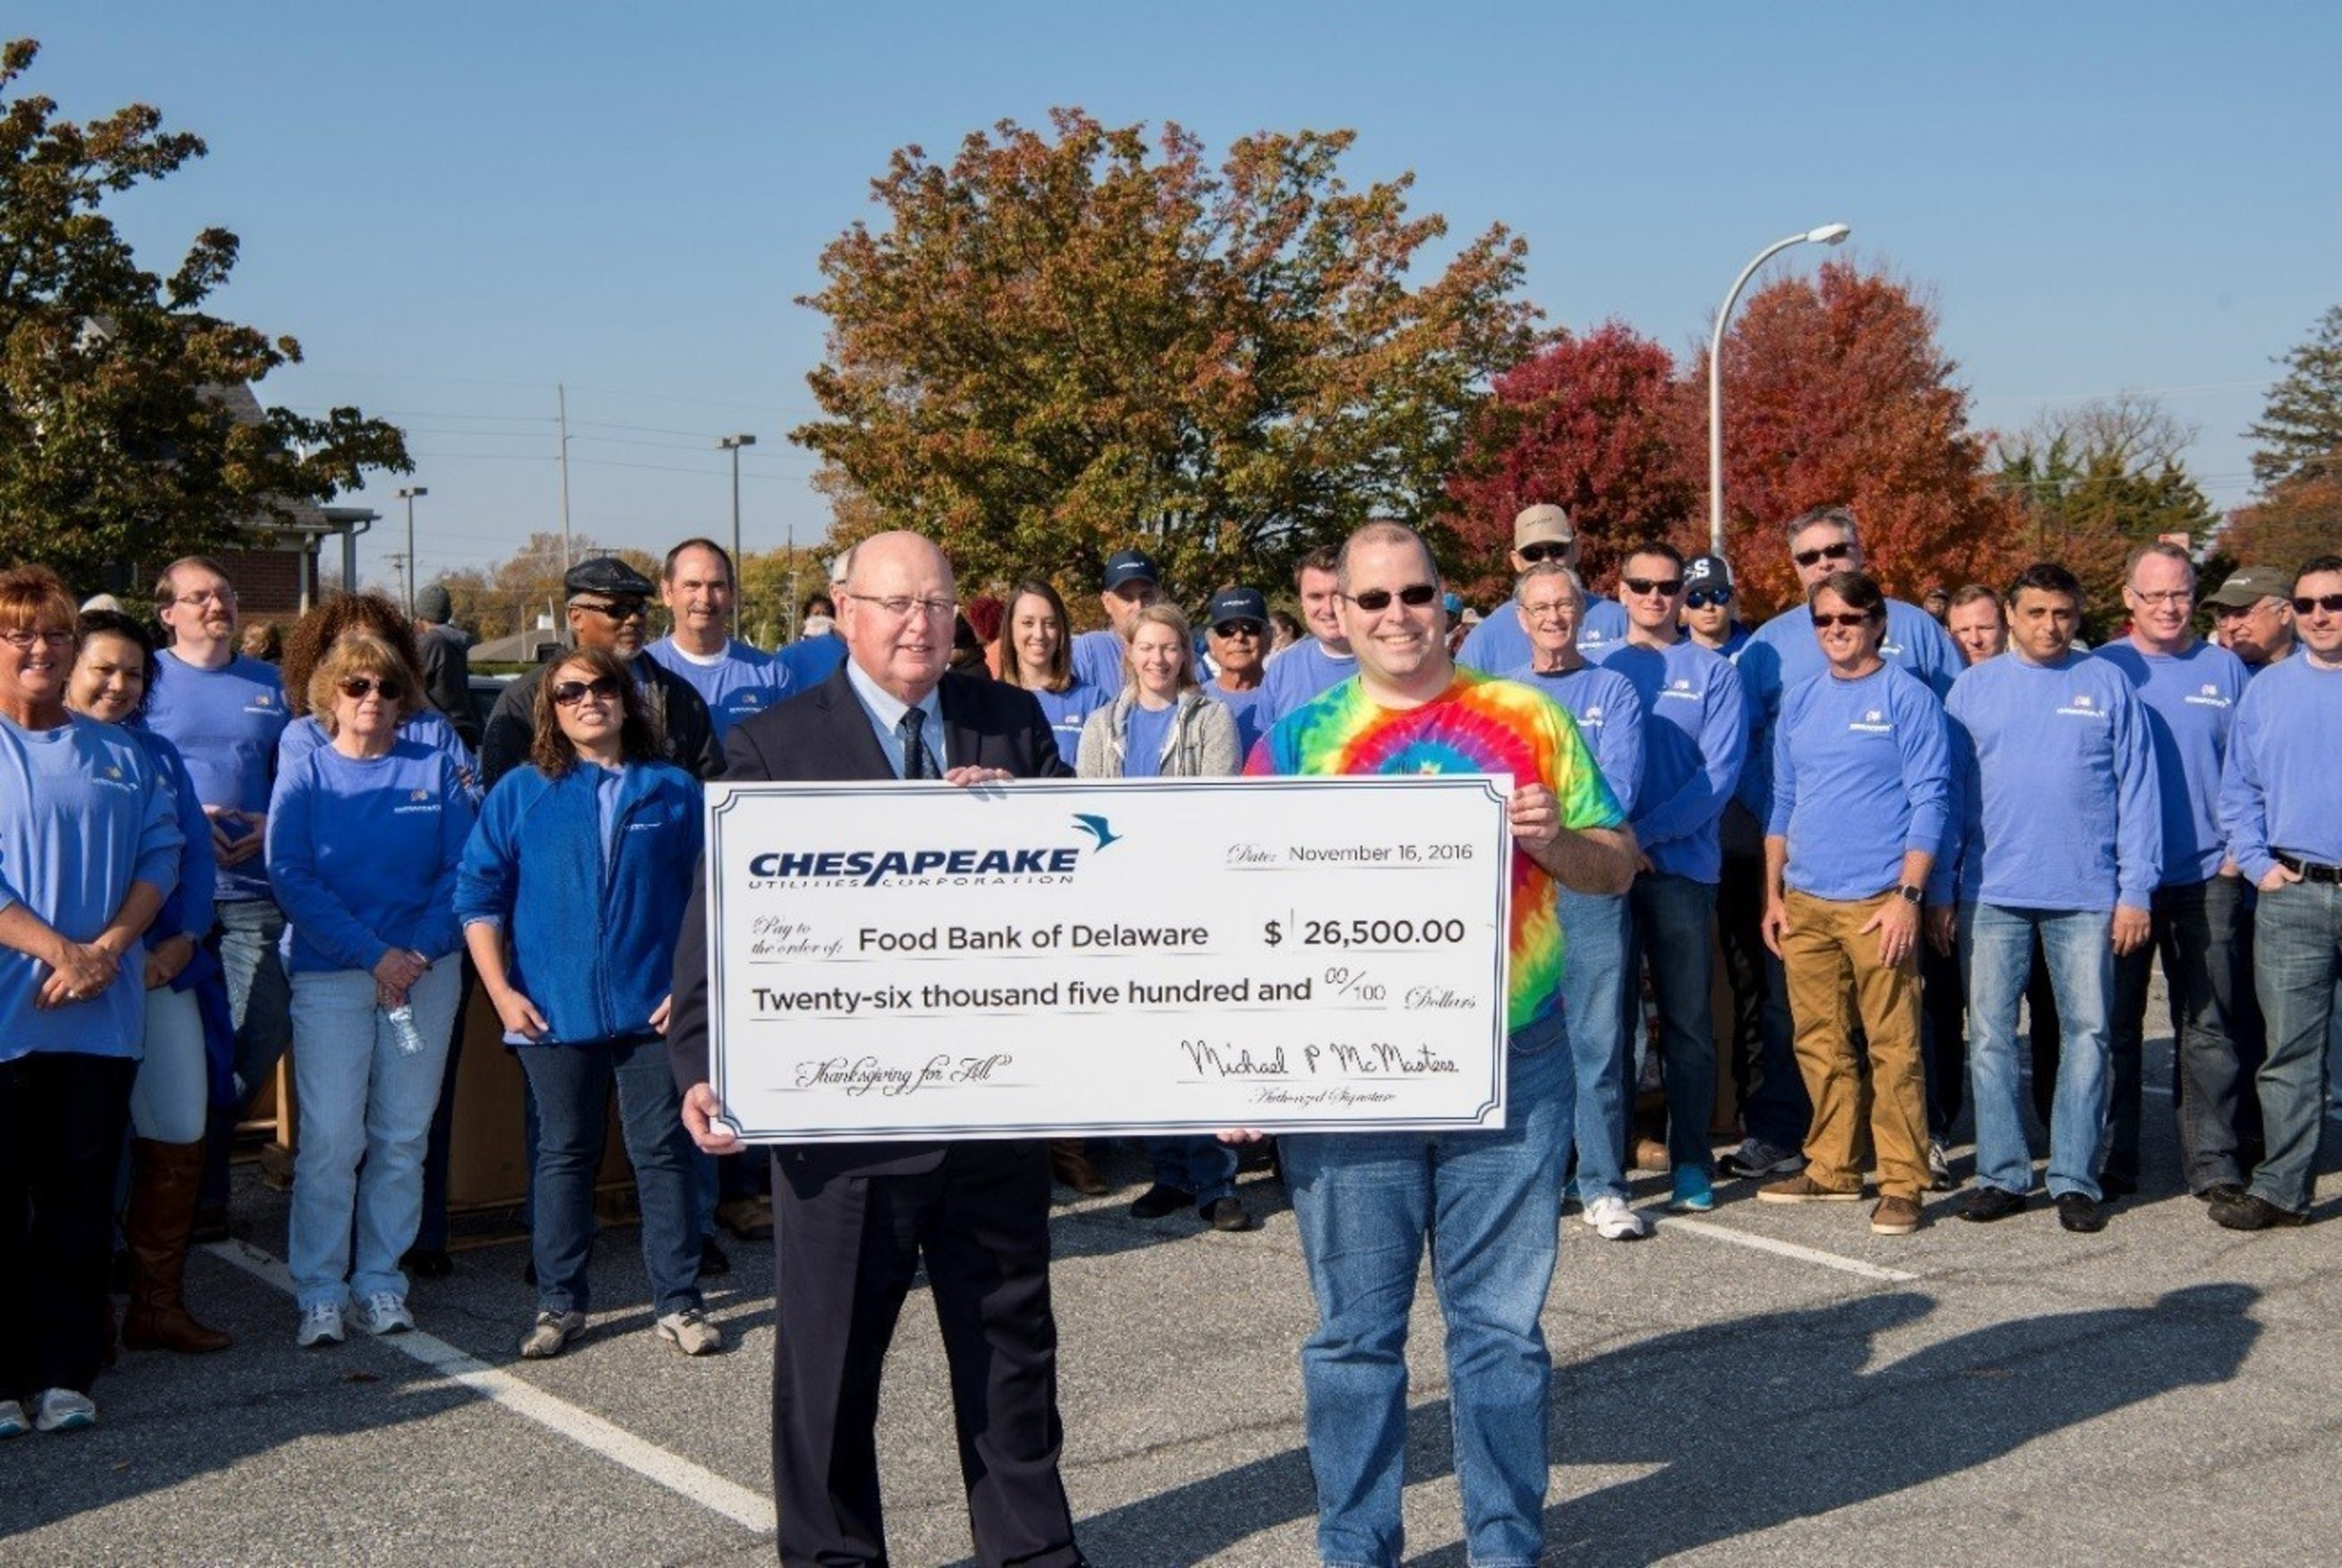 Chad Robinson, Milford Branch Director of the Food Bank of Delaware (right) accepts a donation made on behalf of Chesapeake Utilities Corporation, presented by Michael P. McMasters, Chesapeake Utilities Corporation President and Chief Operating Officer (left).